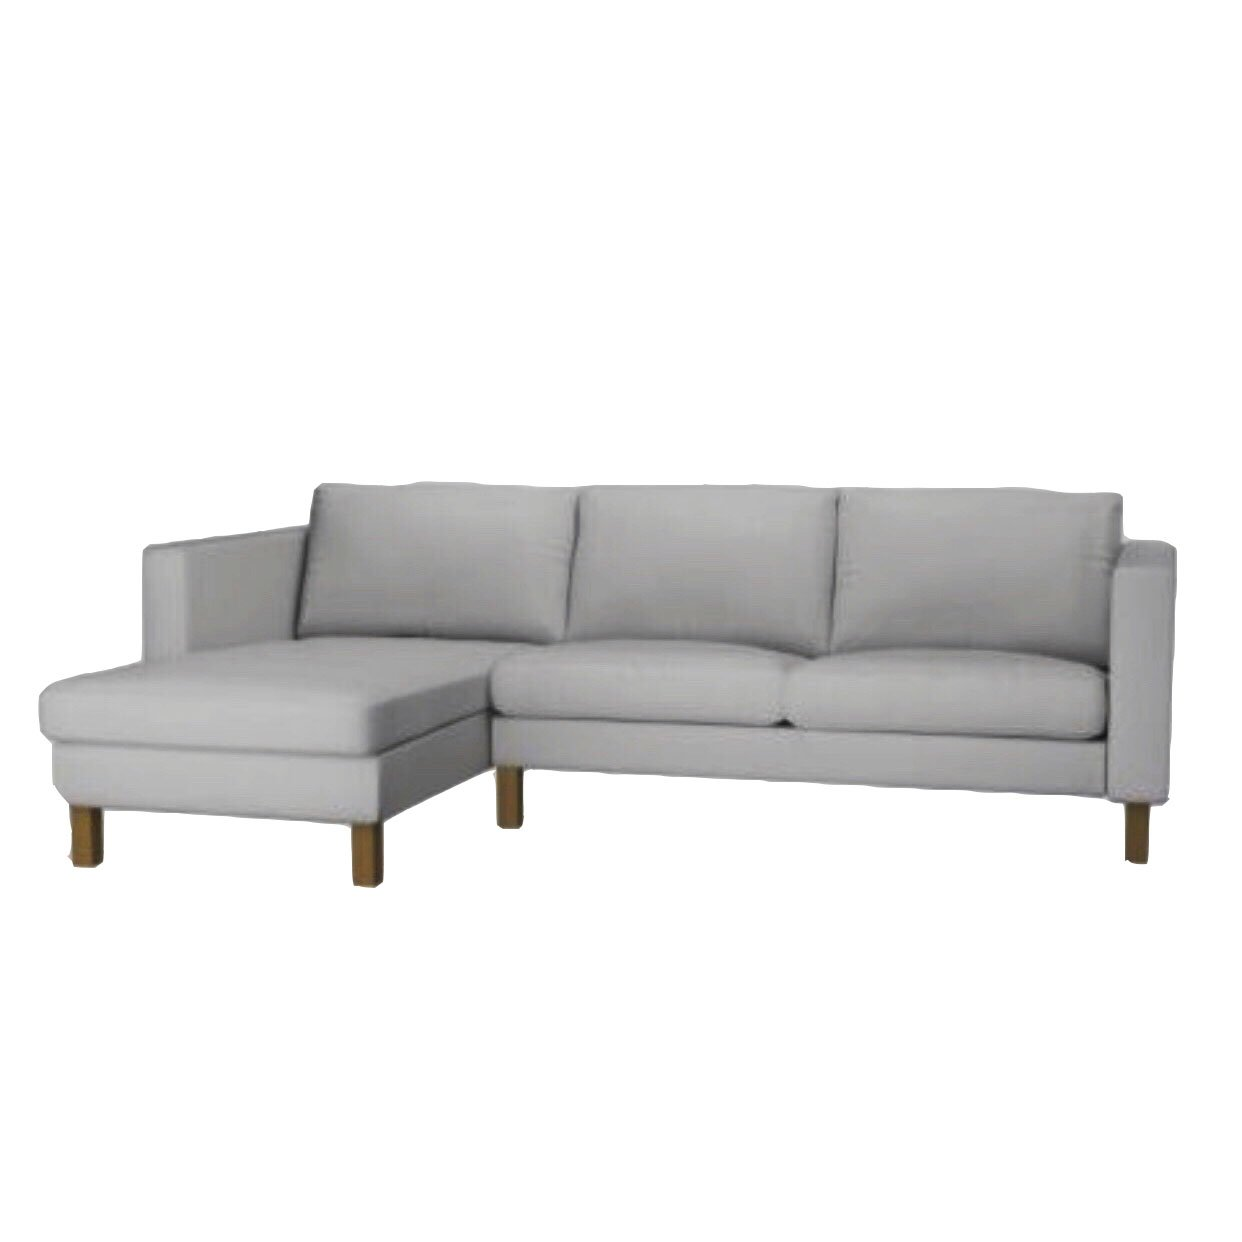 Replace Cover for IKEA Kalstad Two Seat Sofa with Chaise, Replace Loveseat with Chaise Cover, 100% Cotton Fabric, Durable and look elegant (Light Gray)